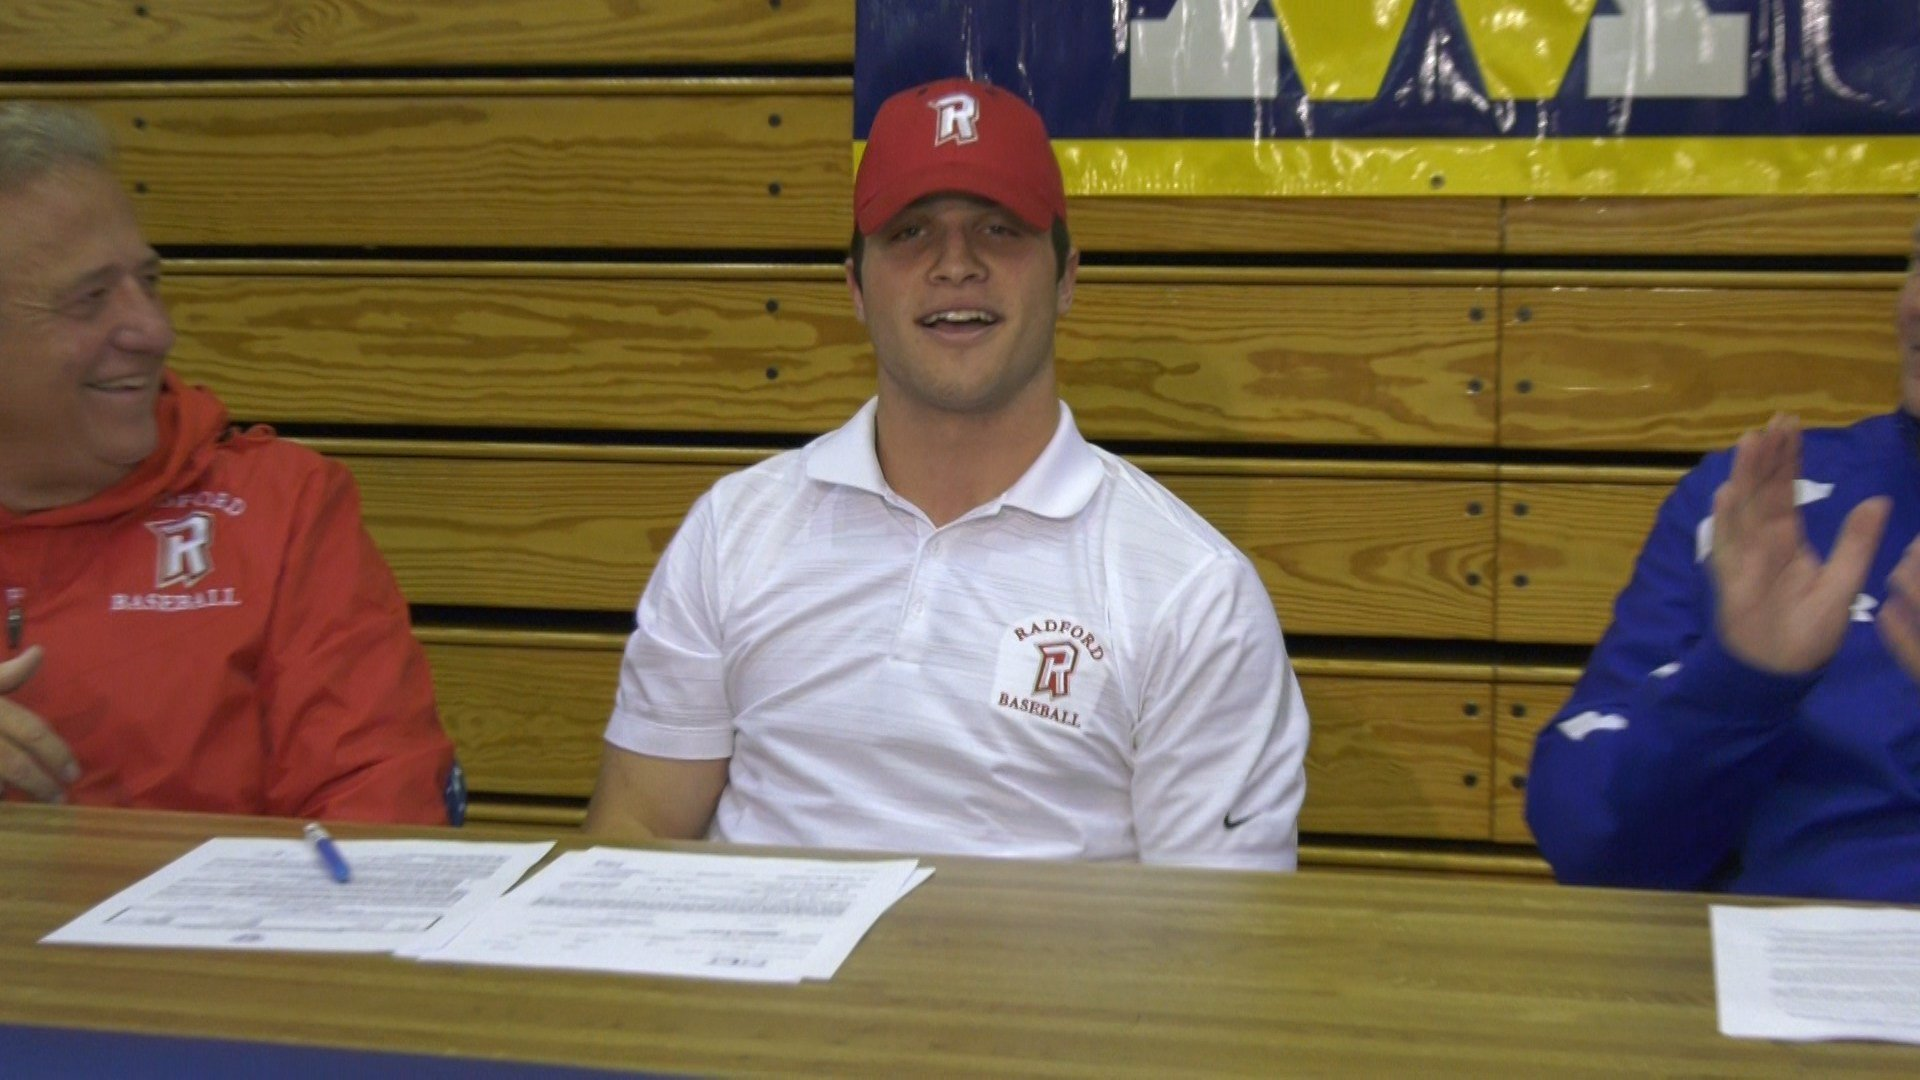 Derek Domecq signs with Radford baseball